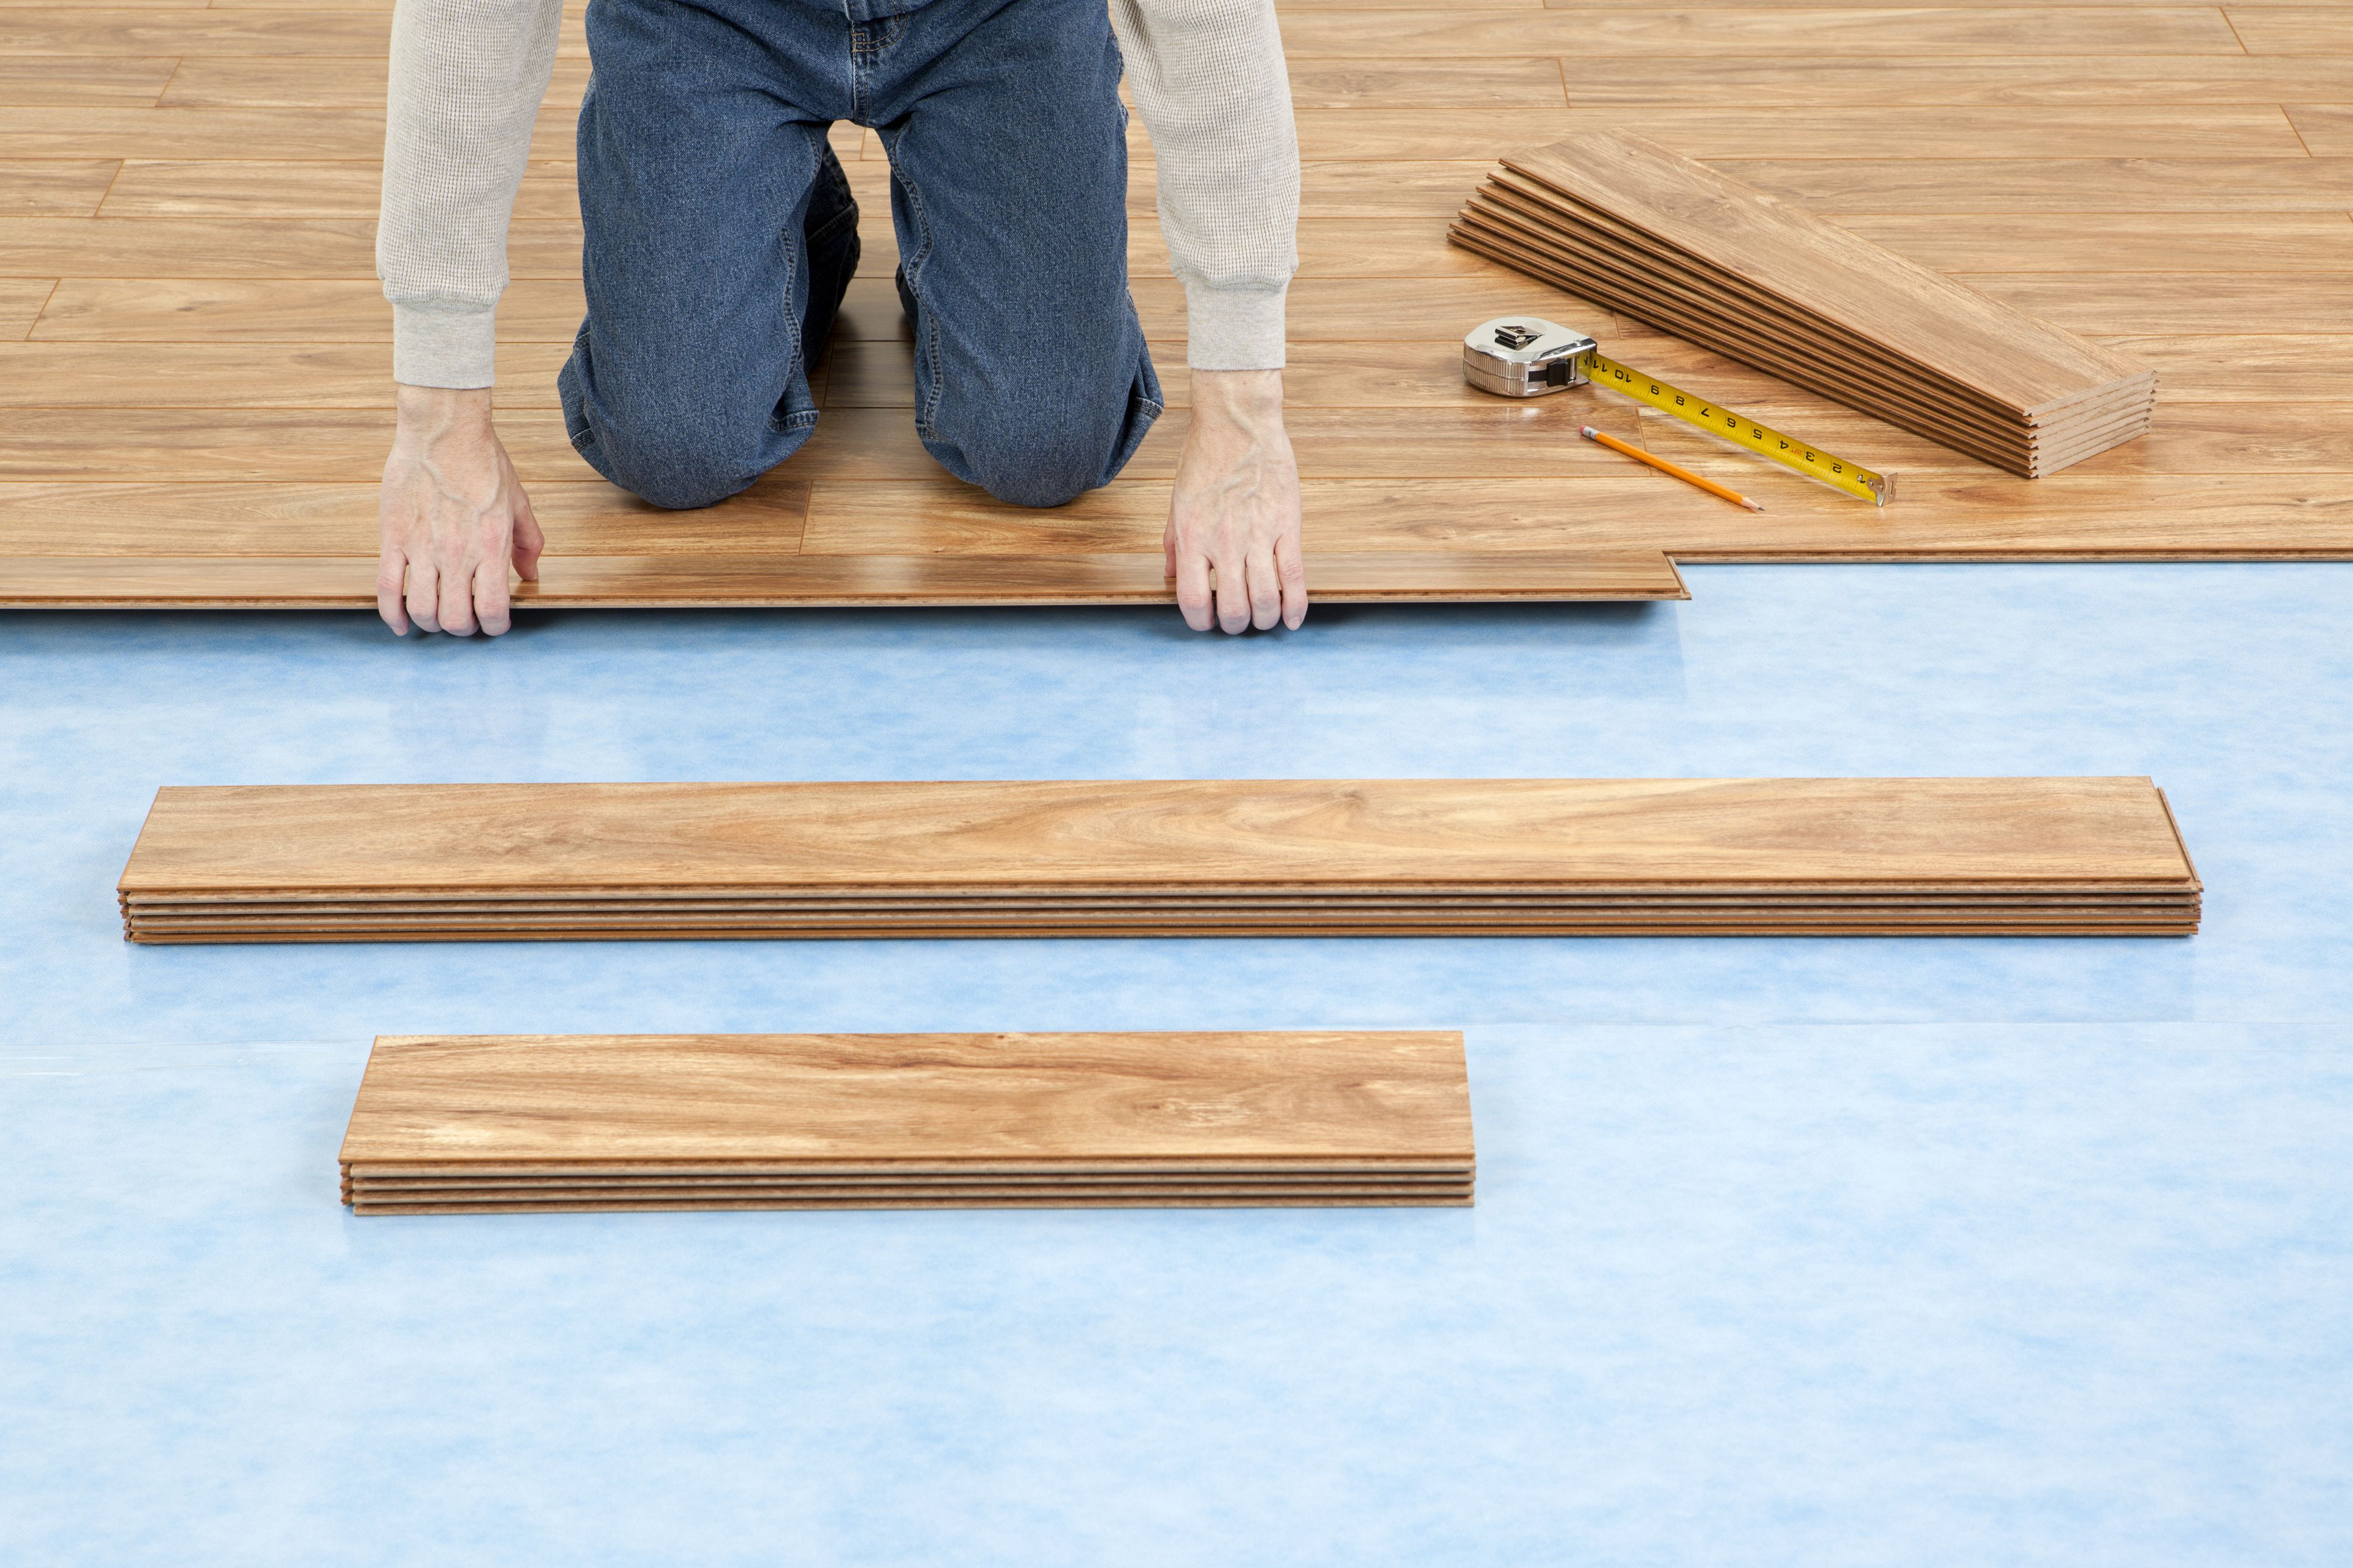 hardwood floor installation quote of installing laminate flooring with attached underlayment with regard to new floor installation 155283725 582735c03df78c6f6af8ac80